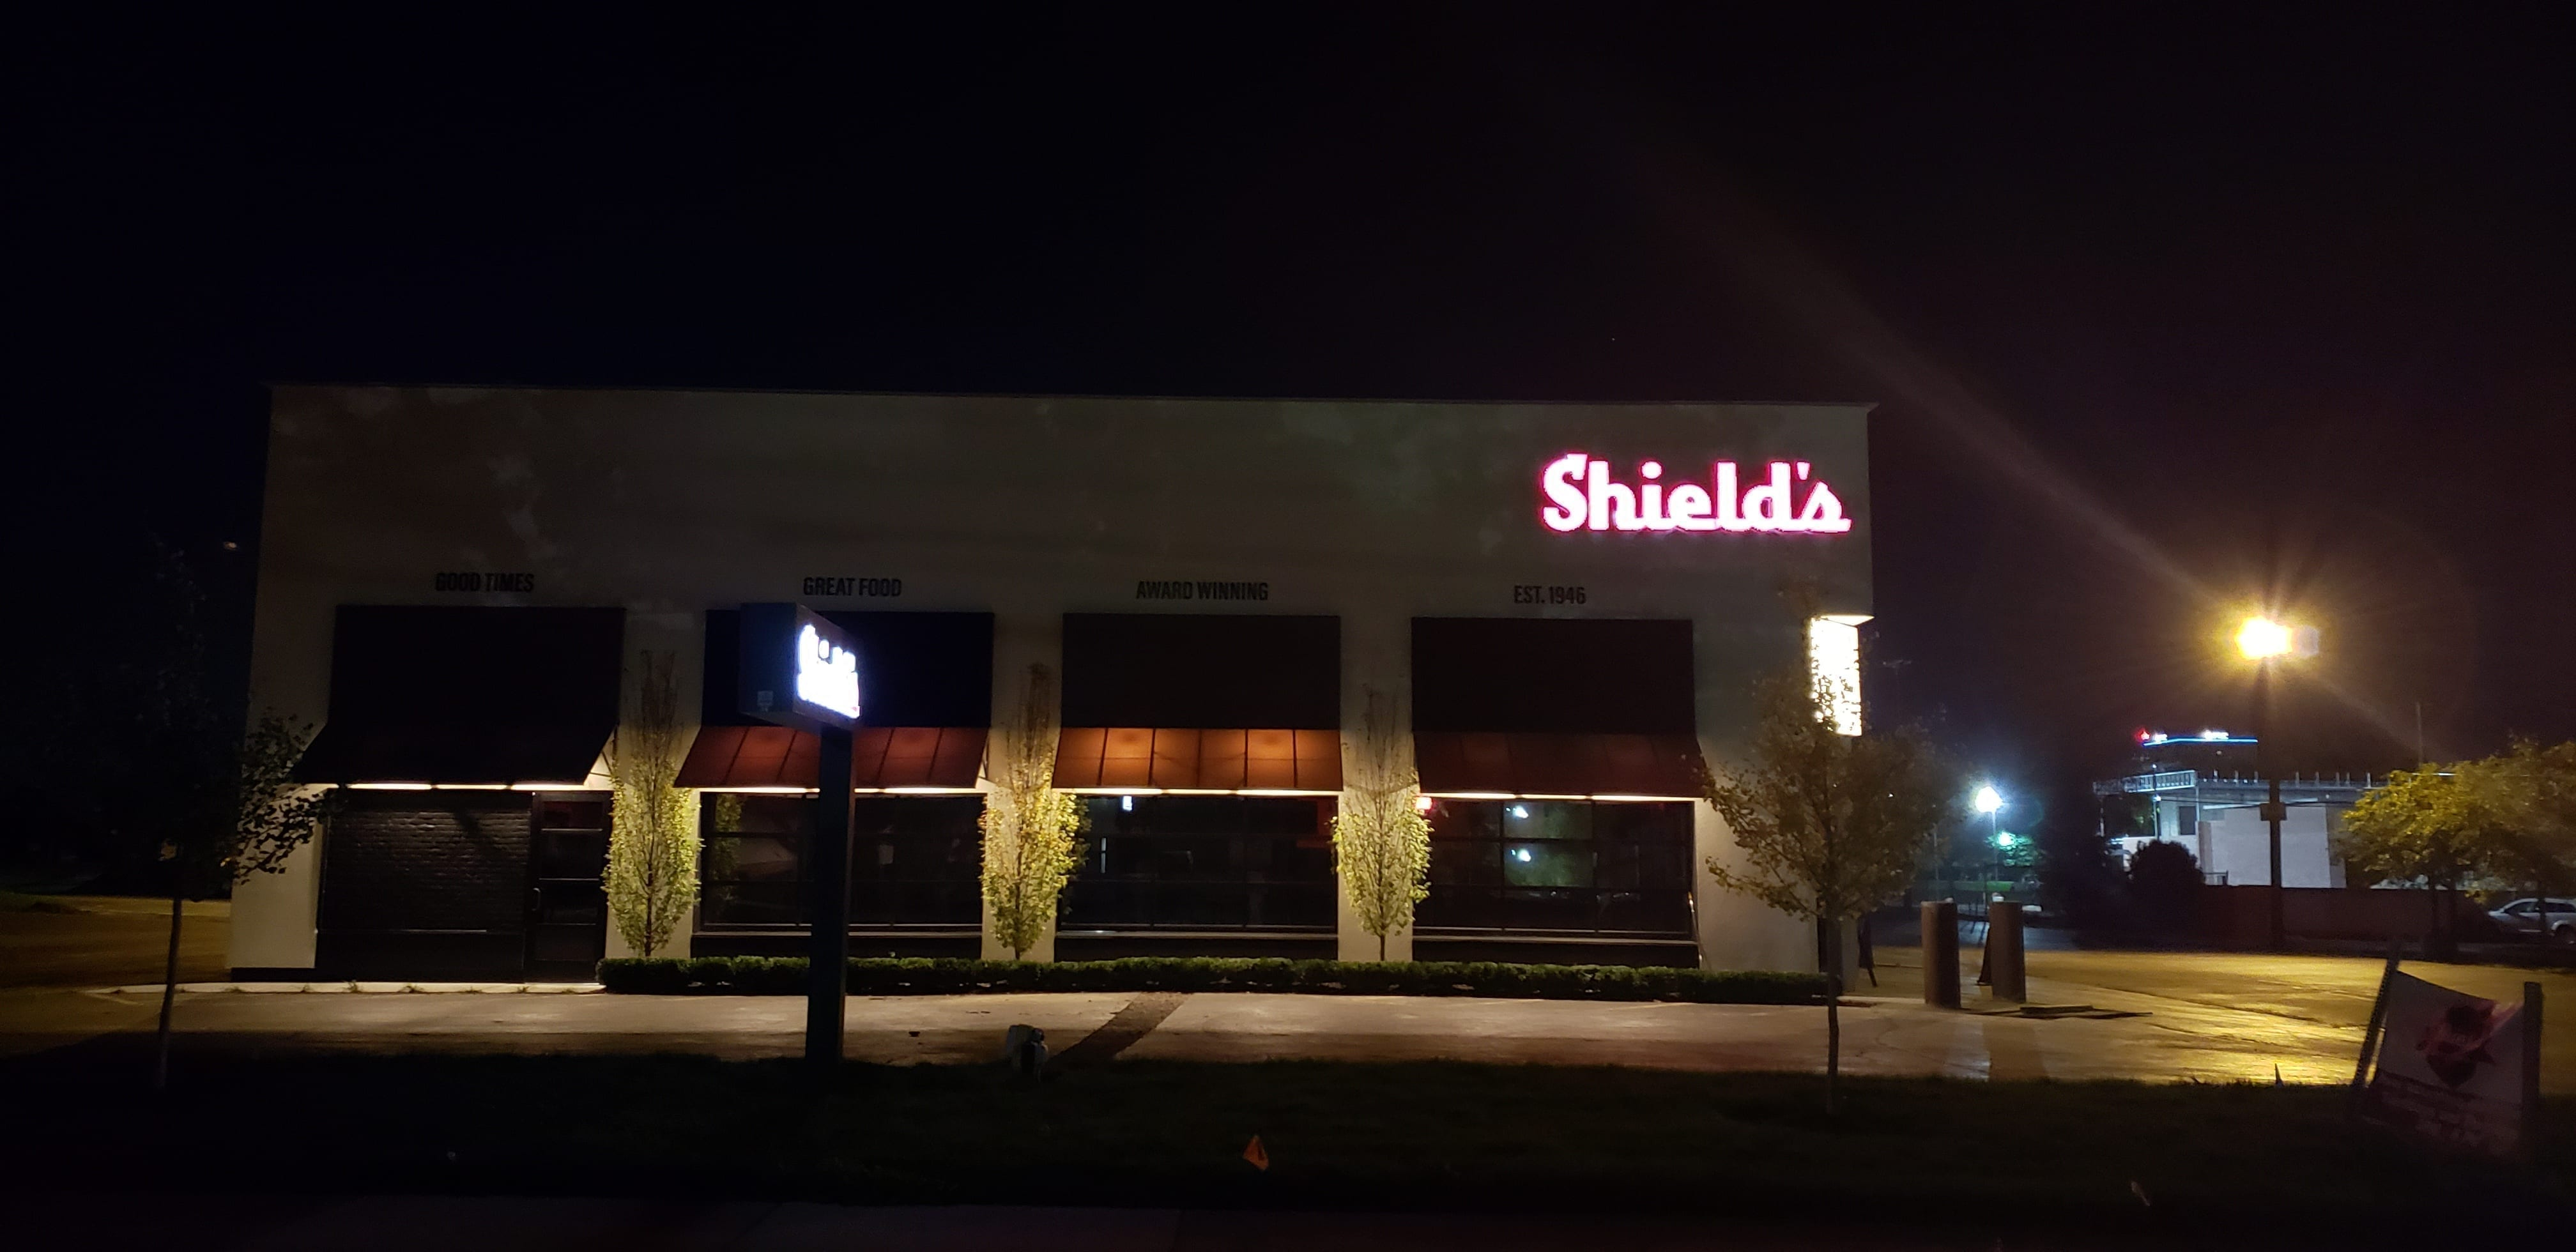 Shield's channel letter illuminated building sign in red